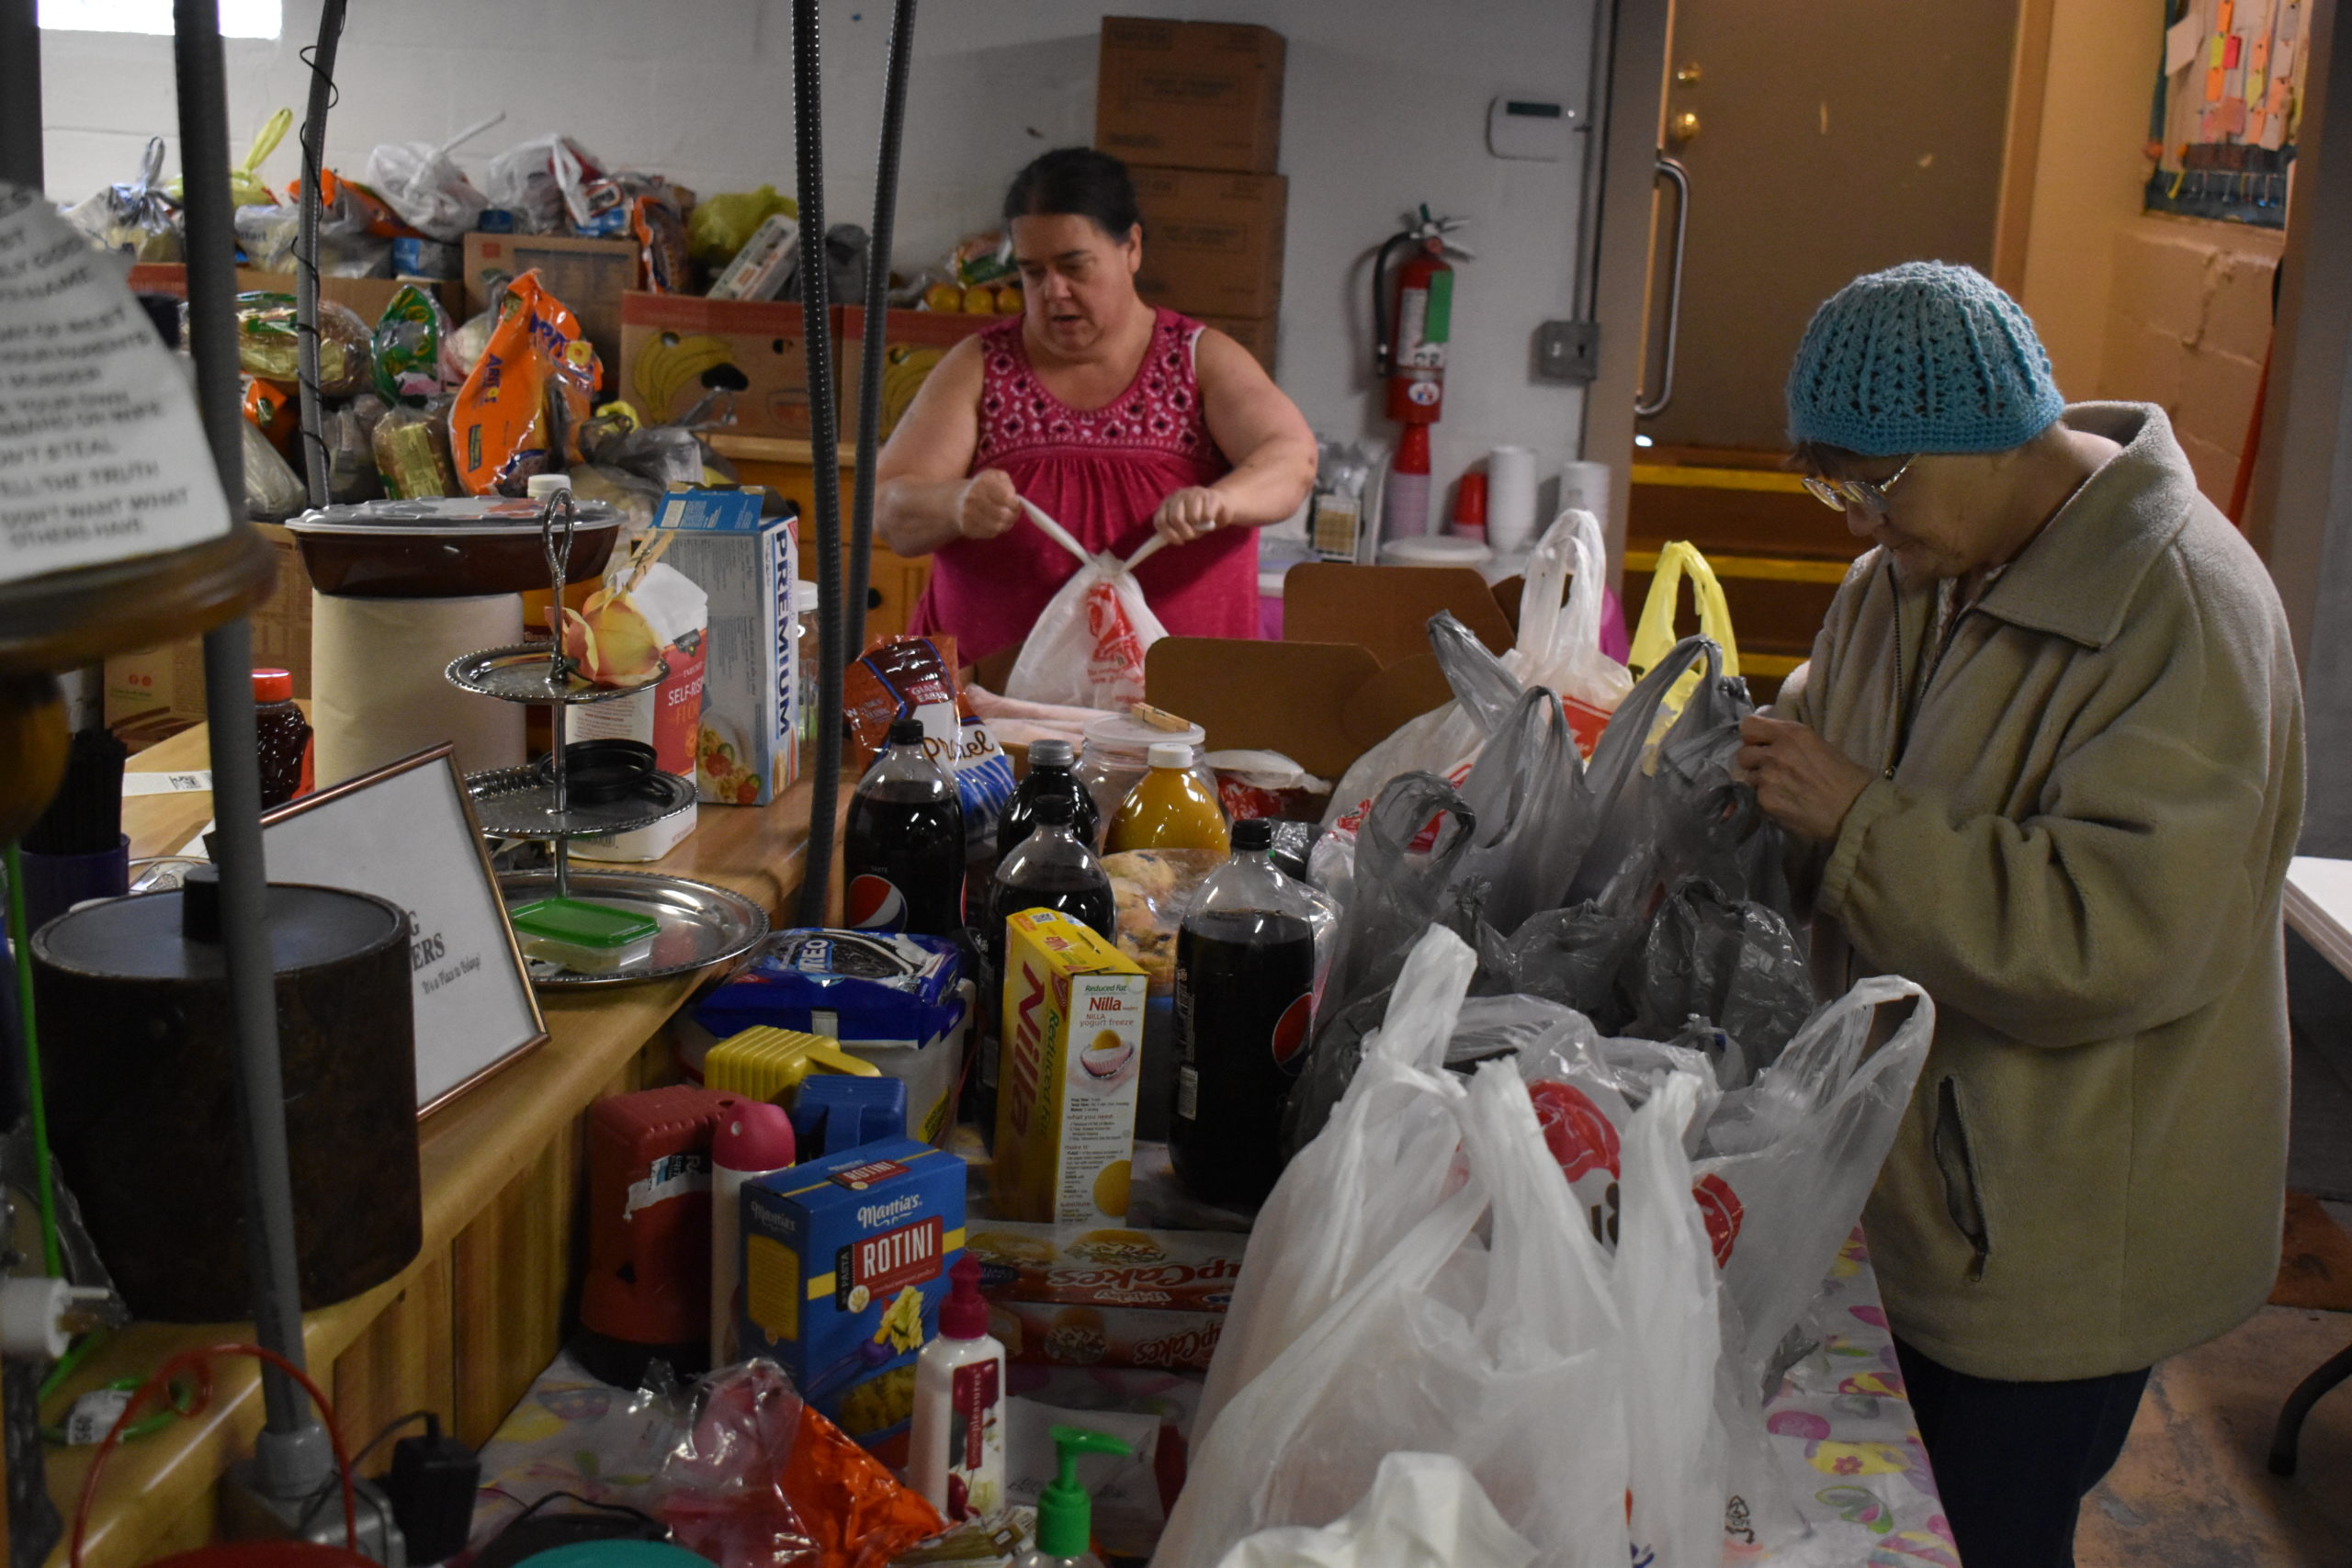 Mary McKelvey, left, and Maida Wilt load bags at the Salvation Army pantry at Living Waters Church, Brookfield.